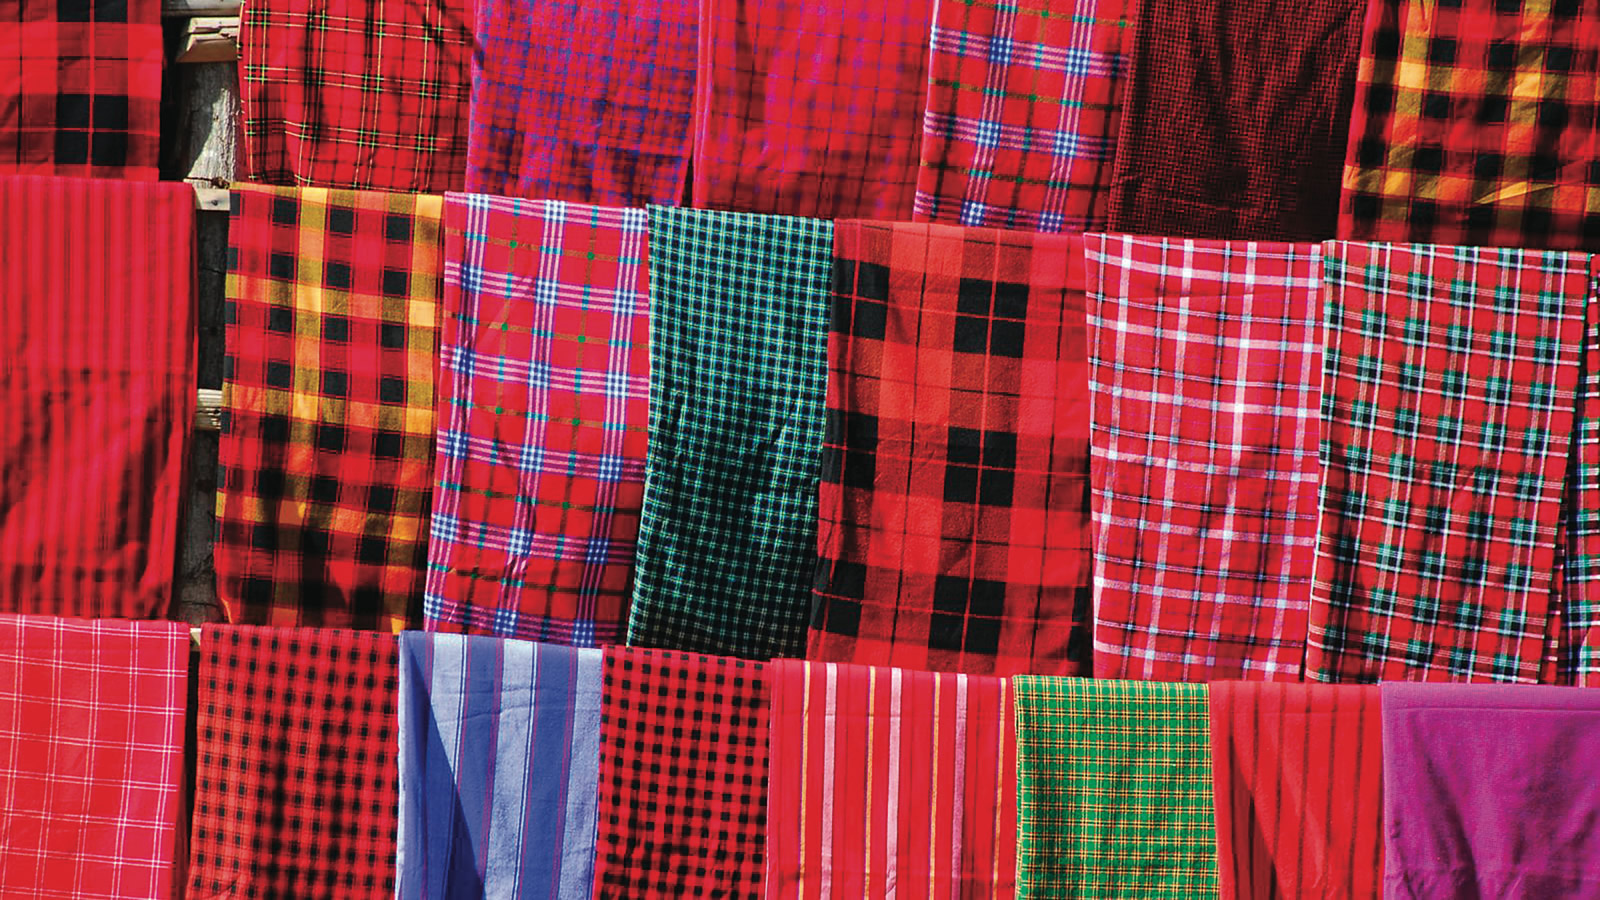 Rows of Red Plaid Cloth